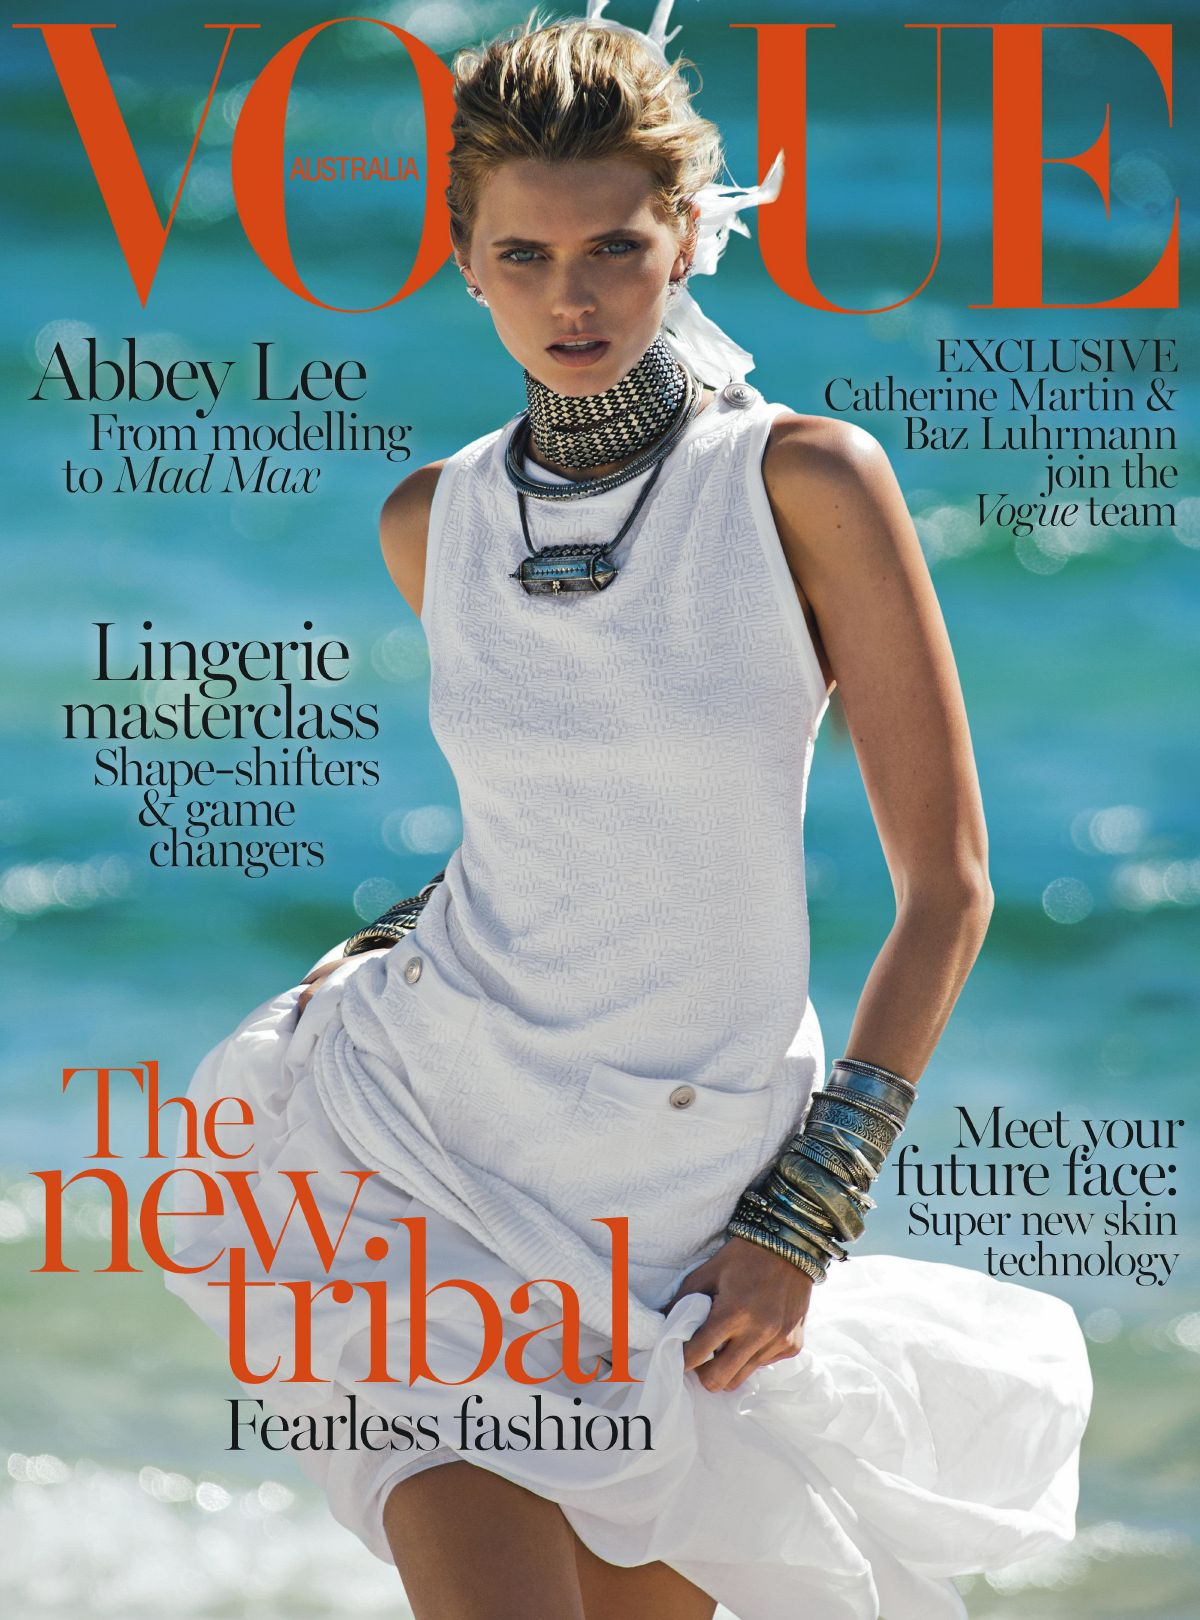 ABBEY LEE KERSHAW on the Cover of Vogue Magazine, Australia April 2014 Issue